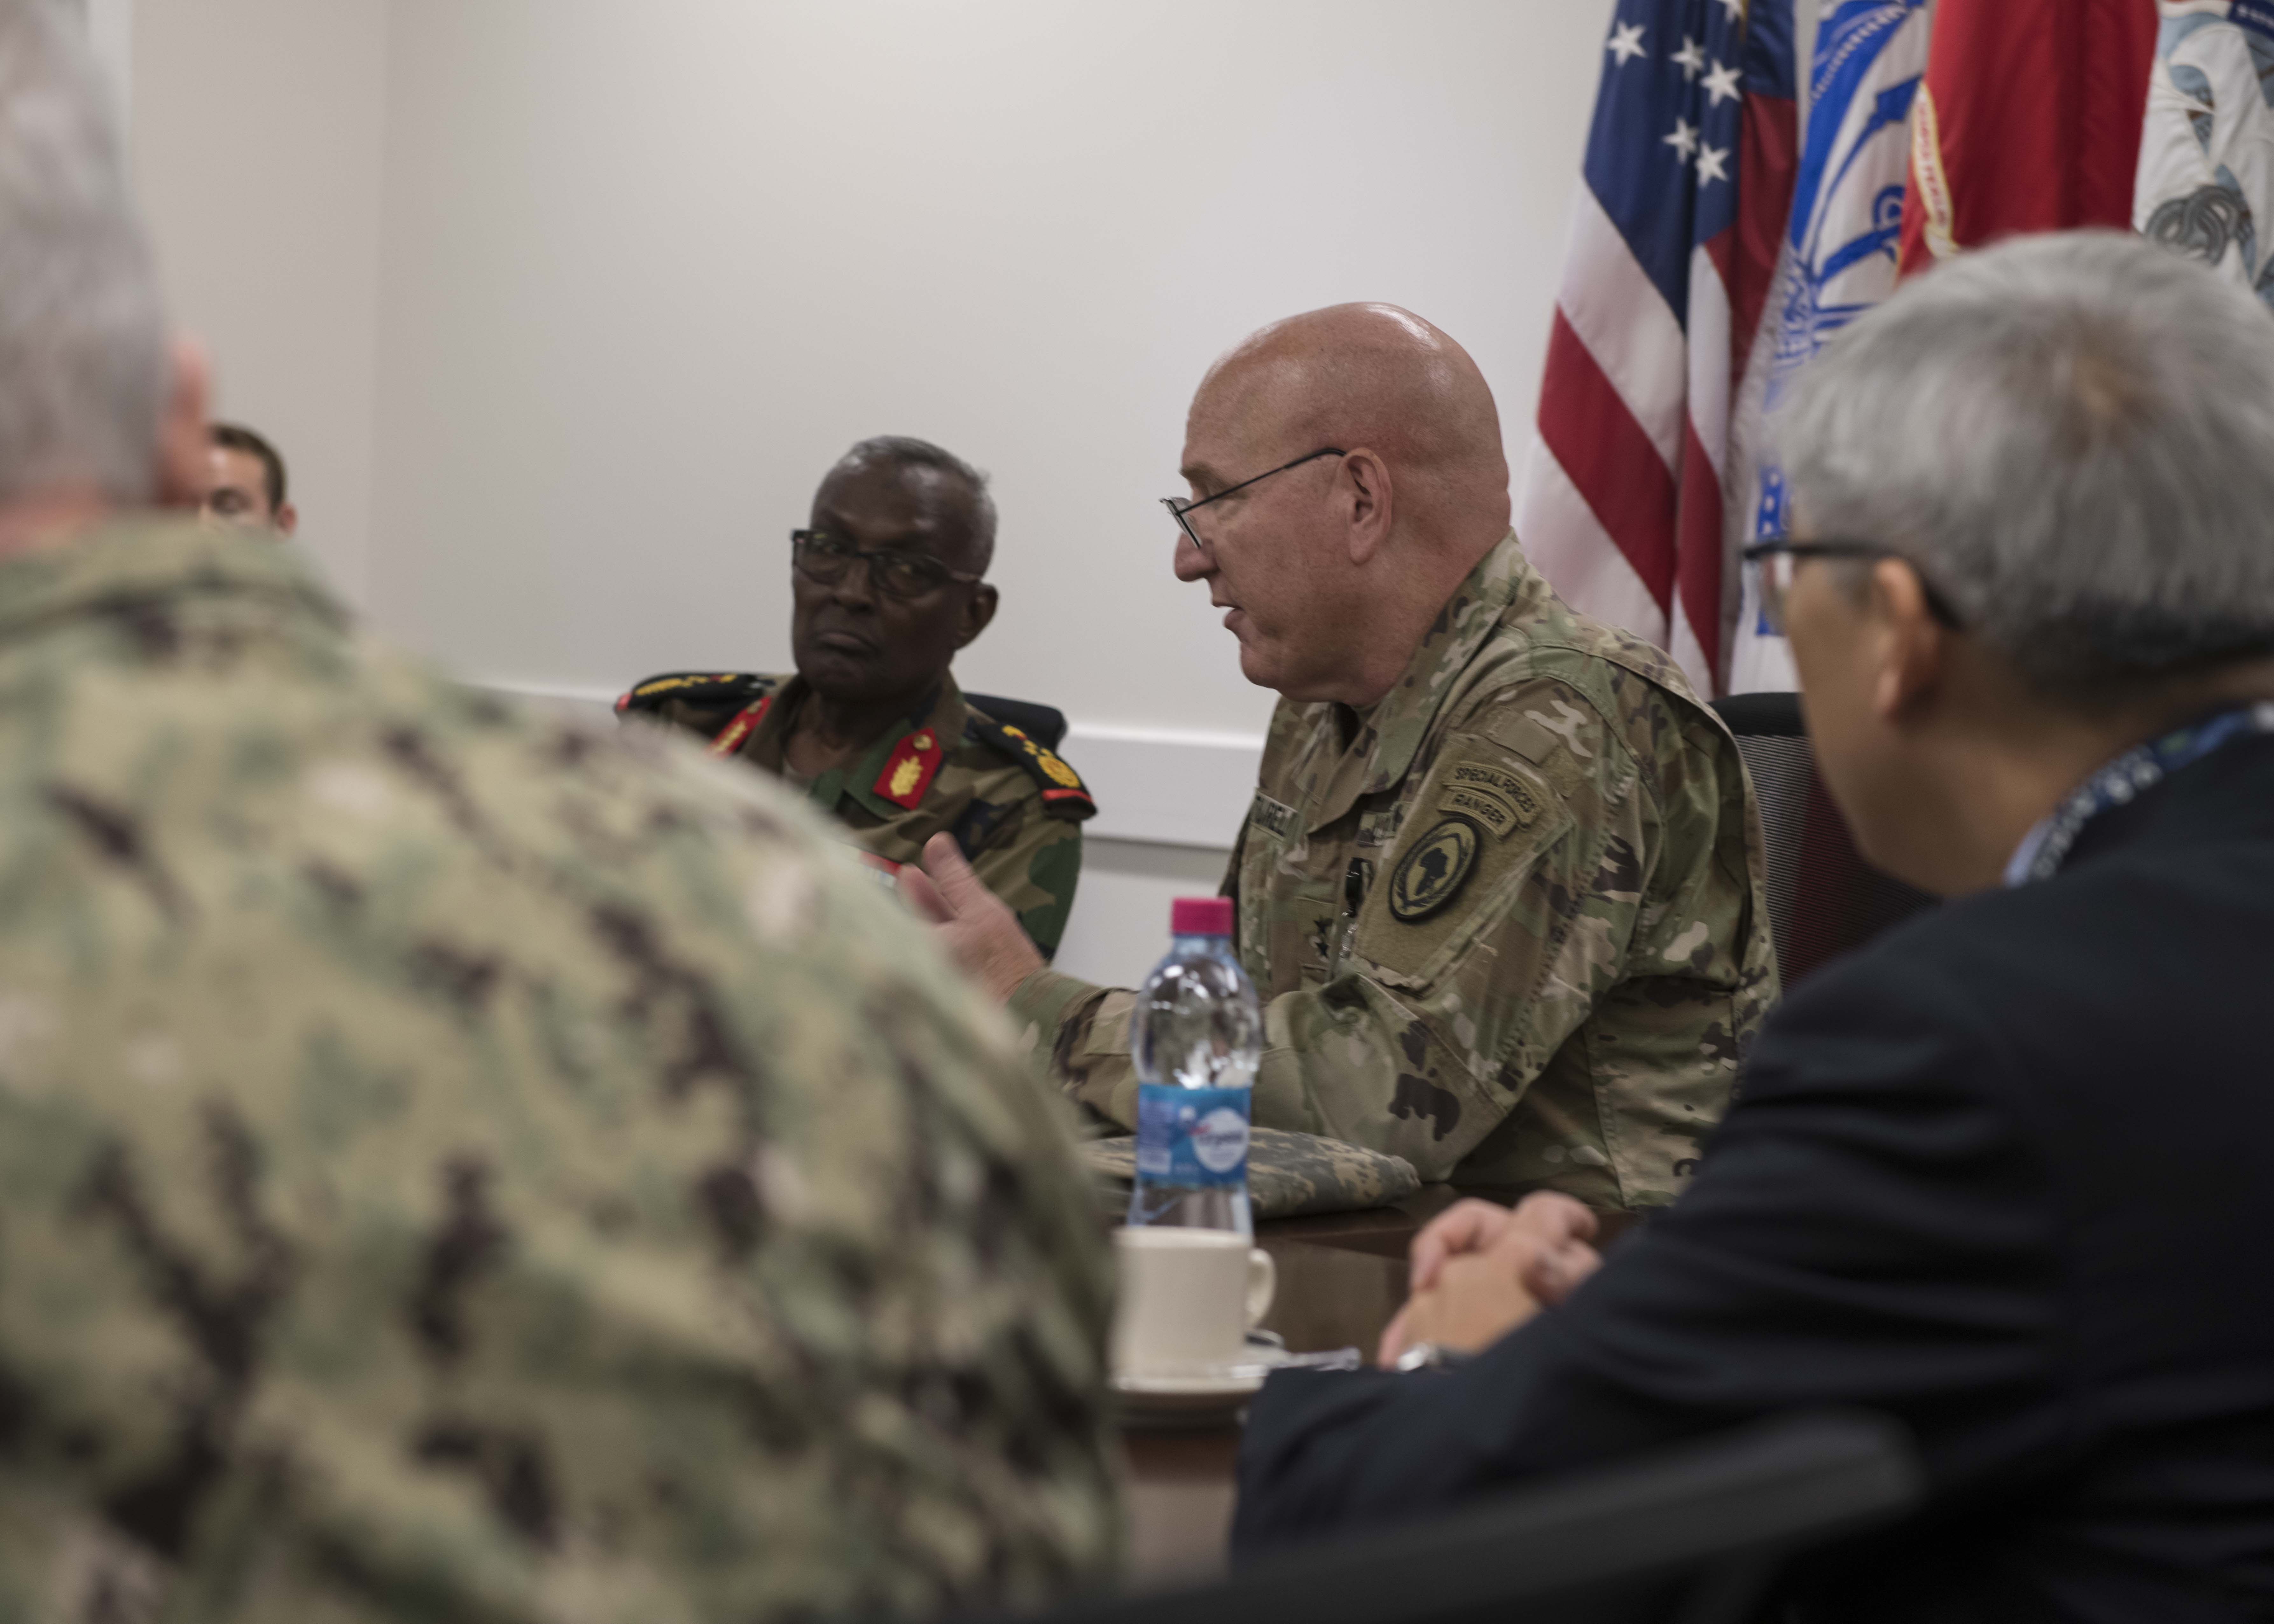 U.S. Army Maj. Gen. Michael D. Turello, commanding general of Combined Joint Task Force-Horn of Africa (CJTF-HOA) meets with Brig. Gen. Ali Mohamed Tahir, headquarters chief of staff of Djibouti Armed Forces (FAD) on Camp Lemonnier, Djibouti, Nov. 14, 2019. Turello and Tahir met and discussed the relationship between CJTF-HOA and the FAD. (U.S. Air Force Photo by Senior Airman Codie Trimble)